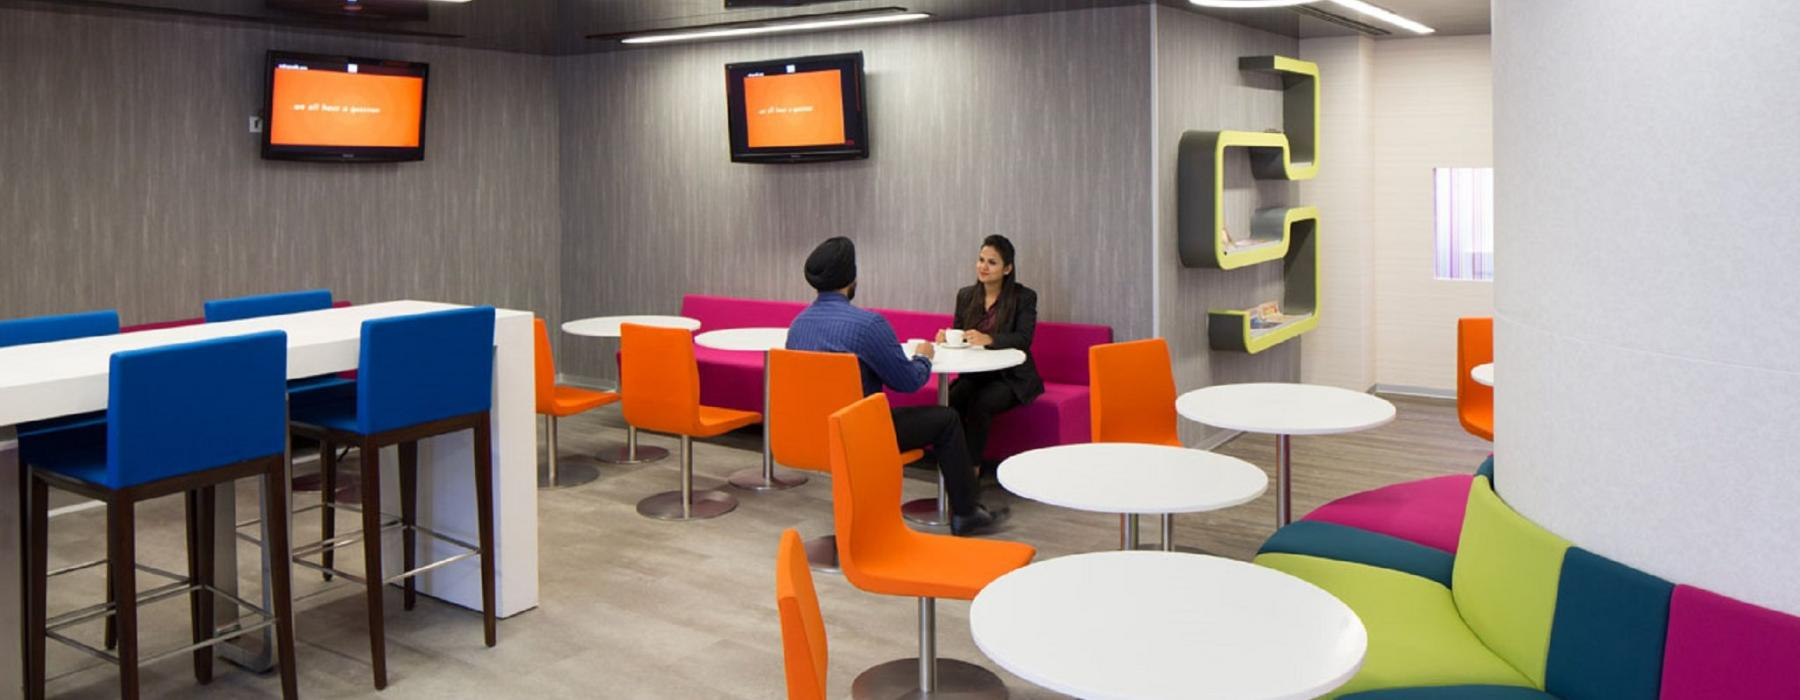 meeting room and virtual office at gurgaon one horizon centre eoffice business address meeting rooms conference rooms virtual office eoffice address office centre